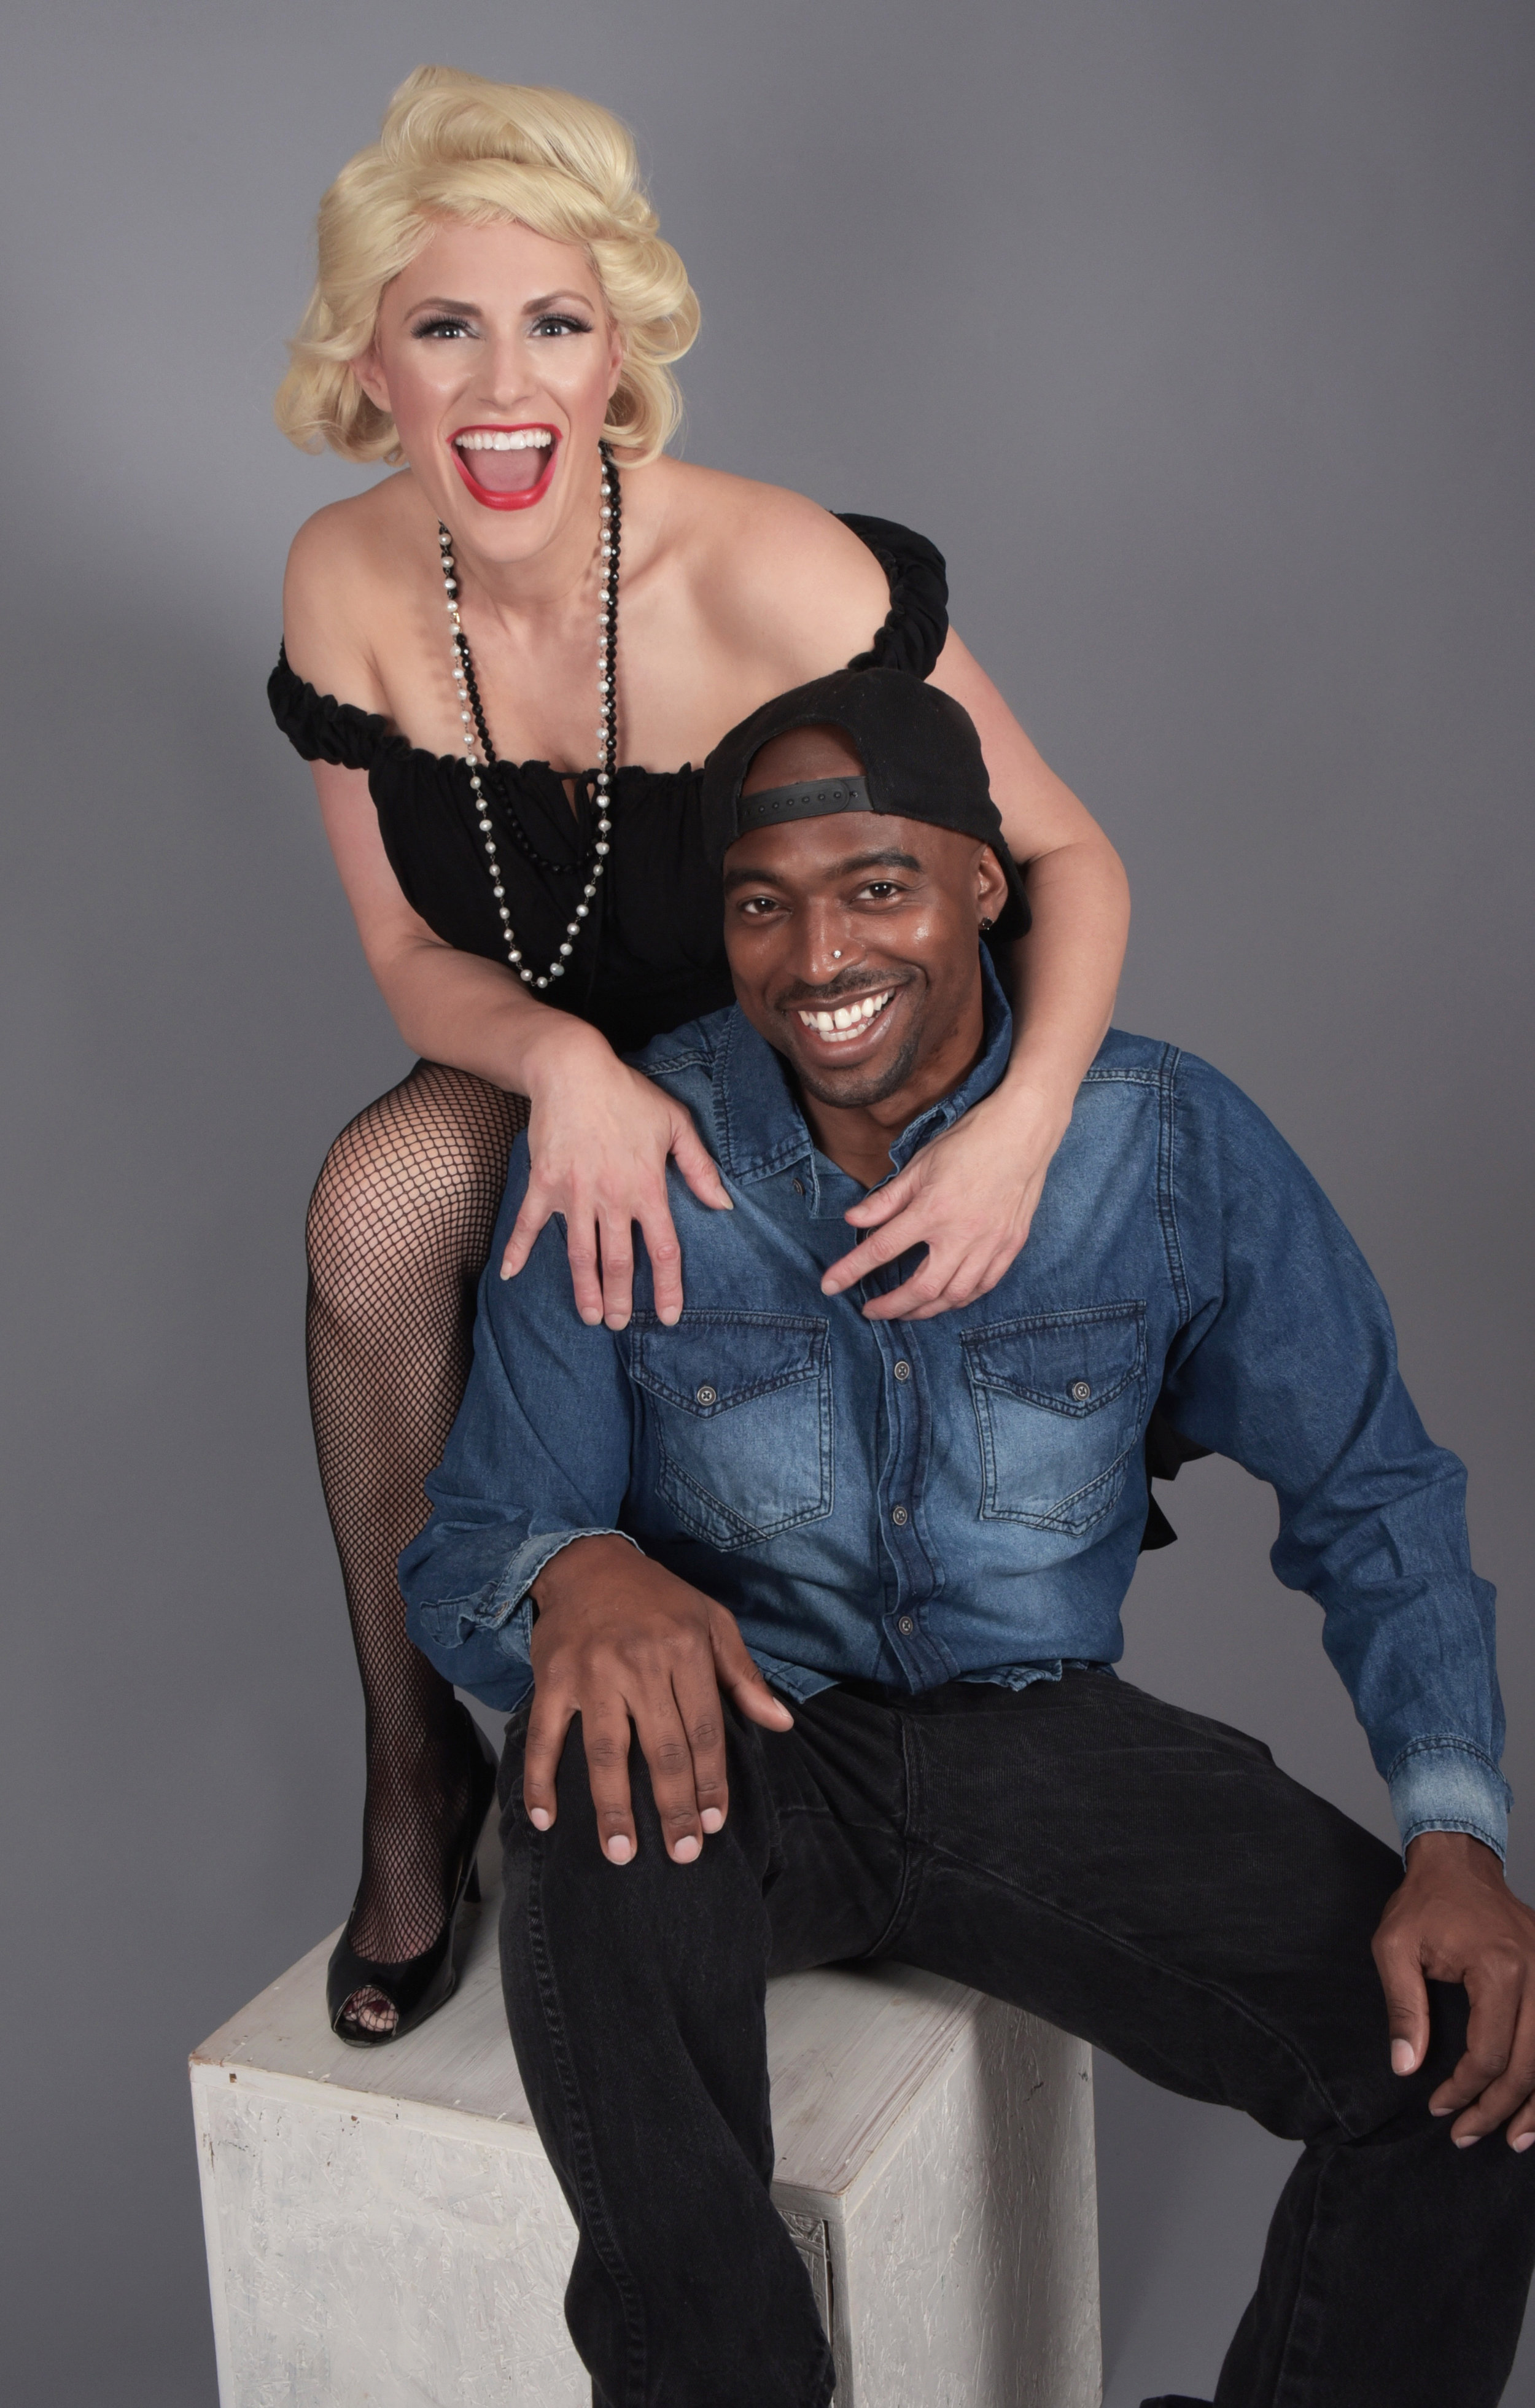 Lorraine Toth & Jermaine Wells - Hollywood Icon Impersonations for your event!